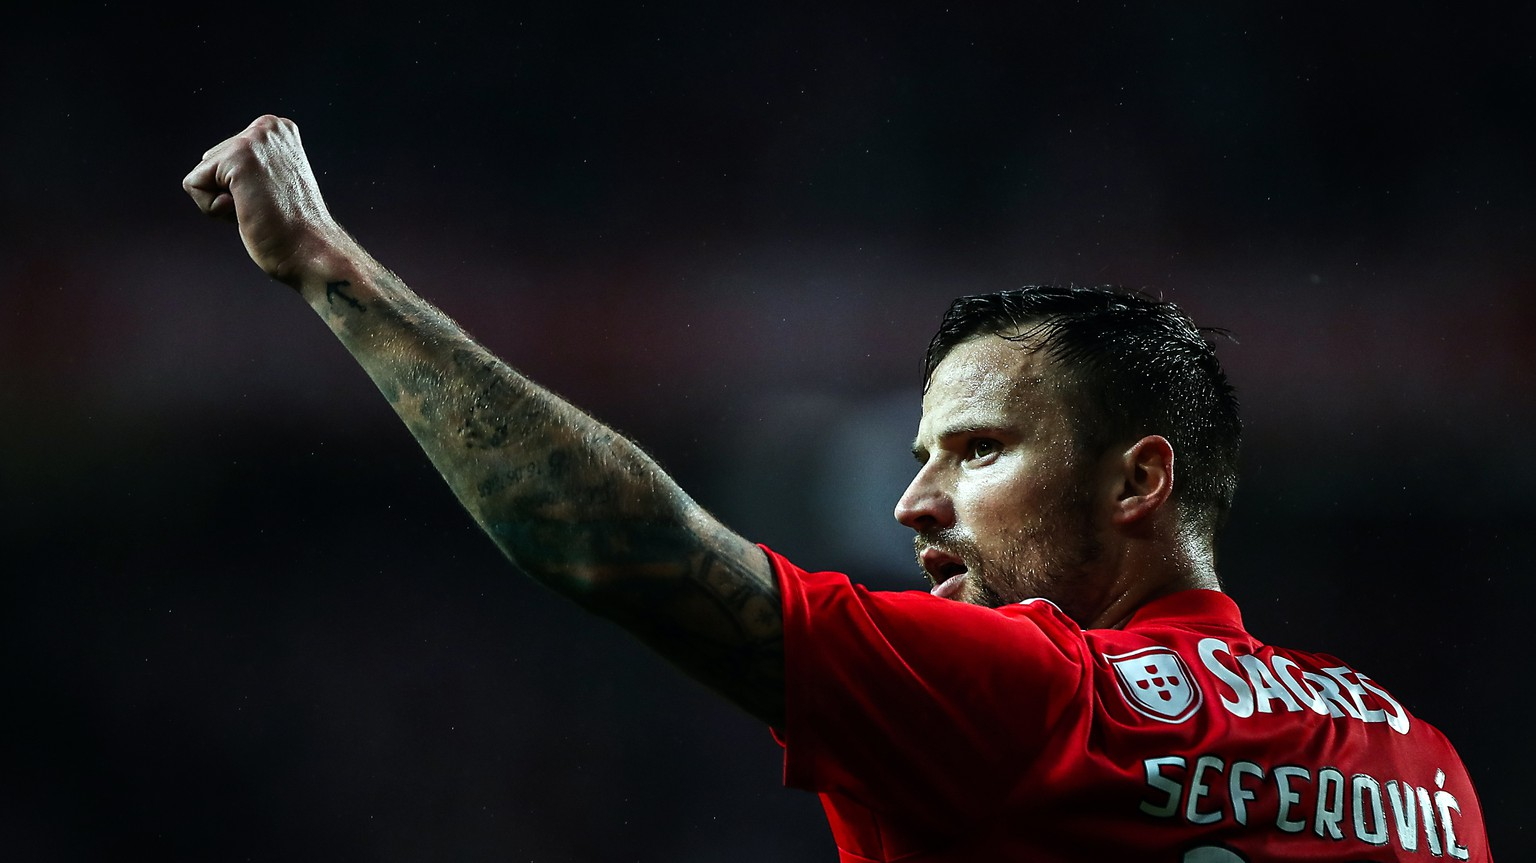 epa07359802 Benfica's Haris Seferovic celebrates after scoring during the Portuguese First League soccer match between Benfica vs Nacional held at Luz Stadium in Lisbon, Portugal, 10 February 2019.  EPA/MARIO CRUZ